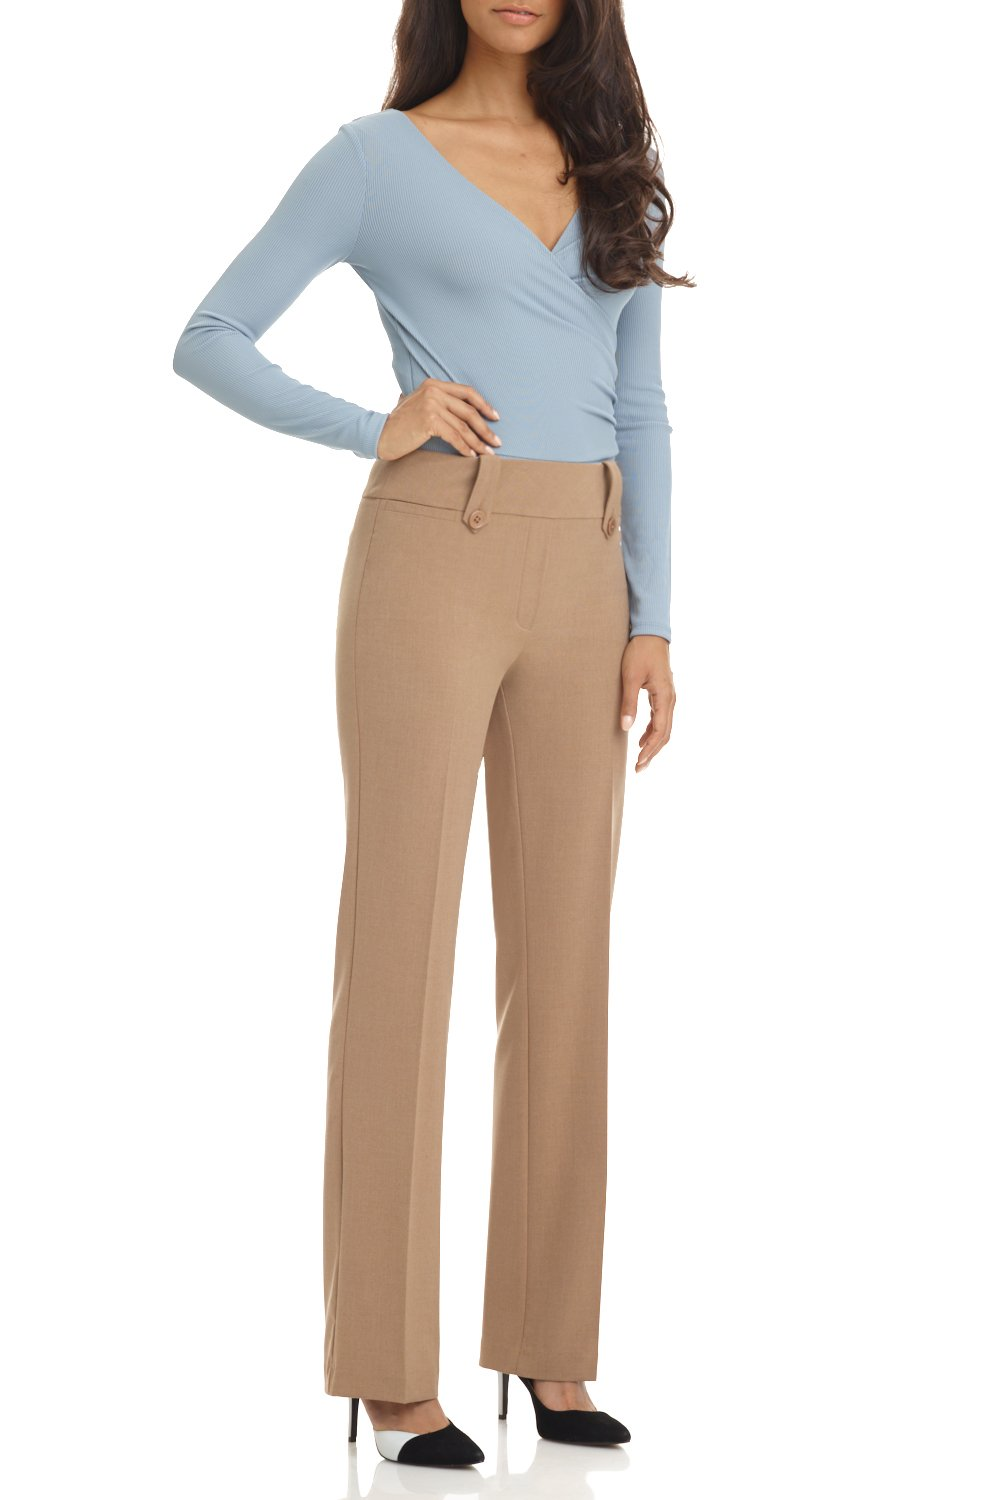 Rekucci Women's Smart Desk to Dinner Stretch Bootcut Pant w/Tummy Control (10,Taupe Mix)